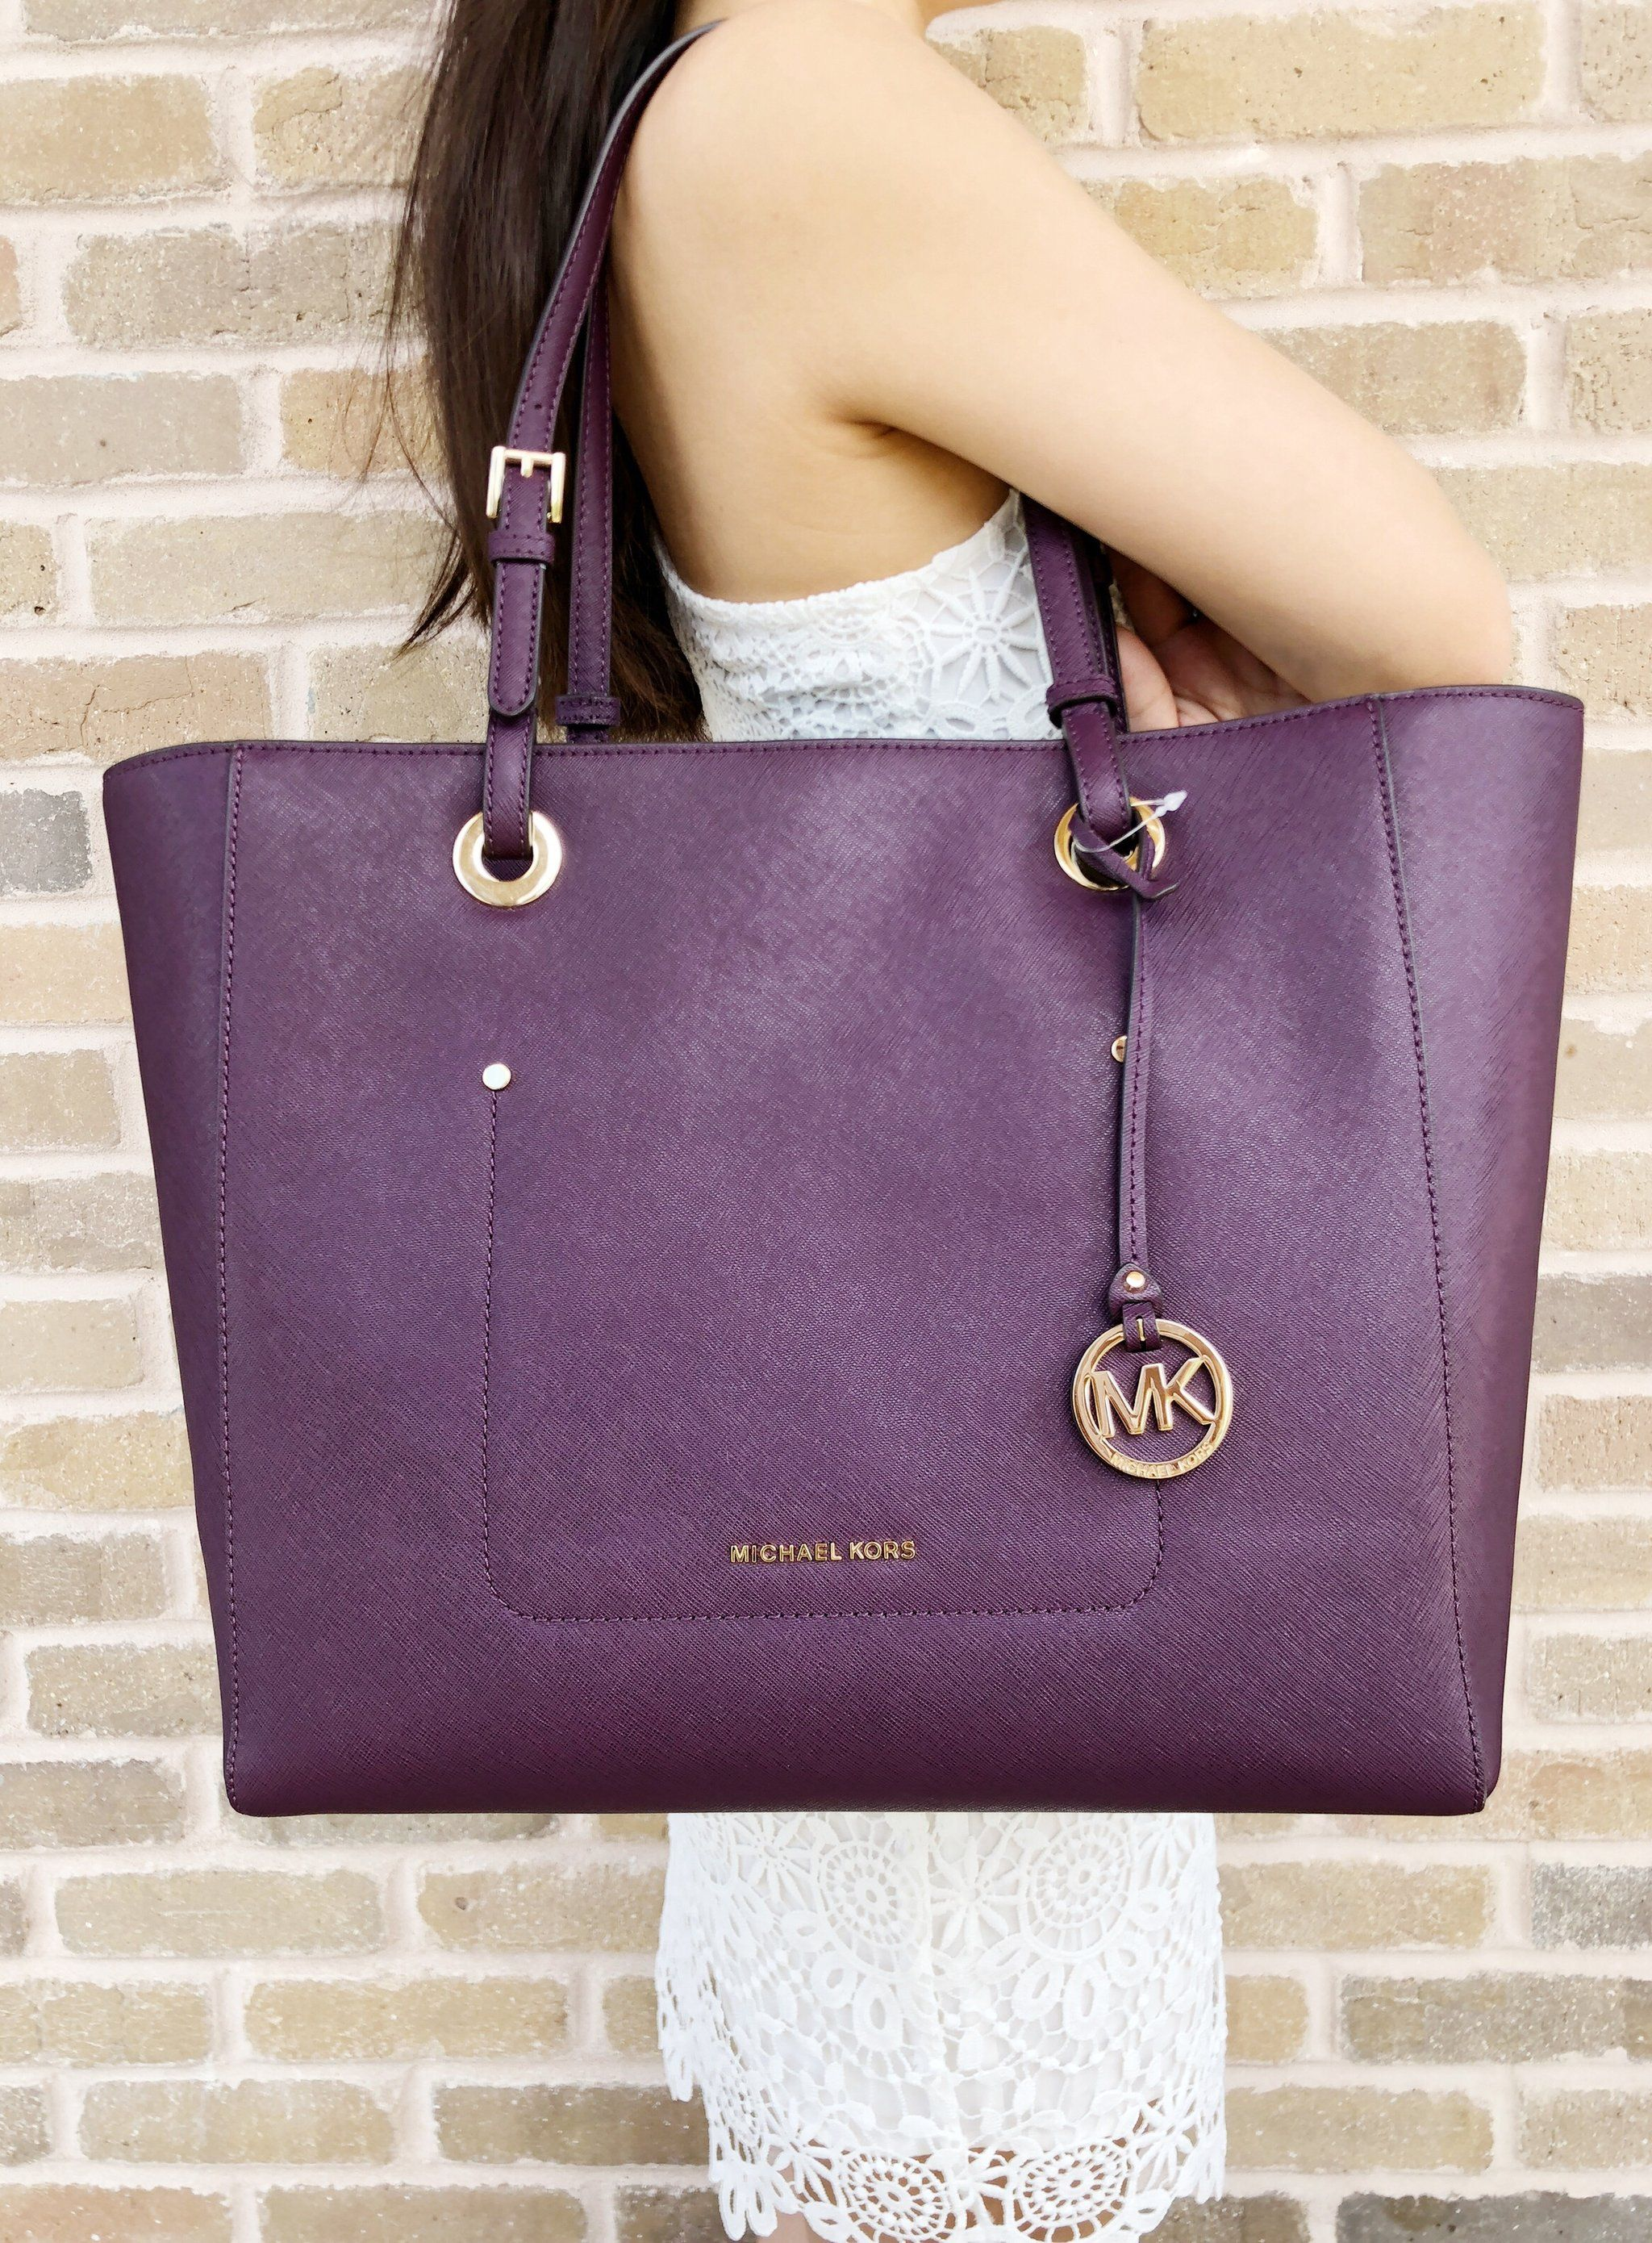 5a63e78b27 NWT Michael Kors Walsh Large Saffiano Leather Tote Damson Purple ...